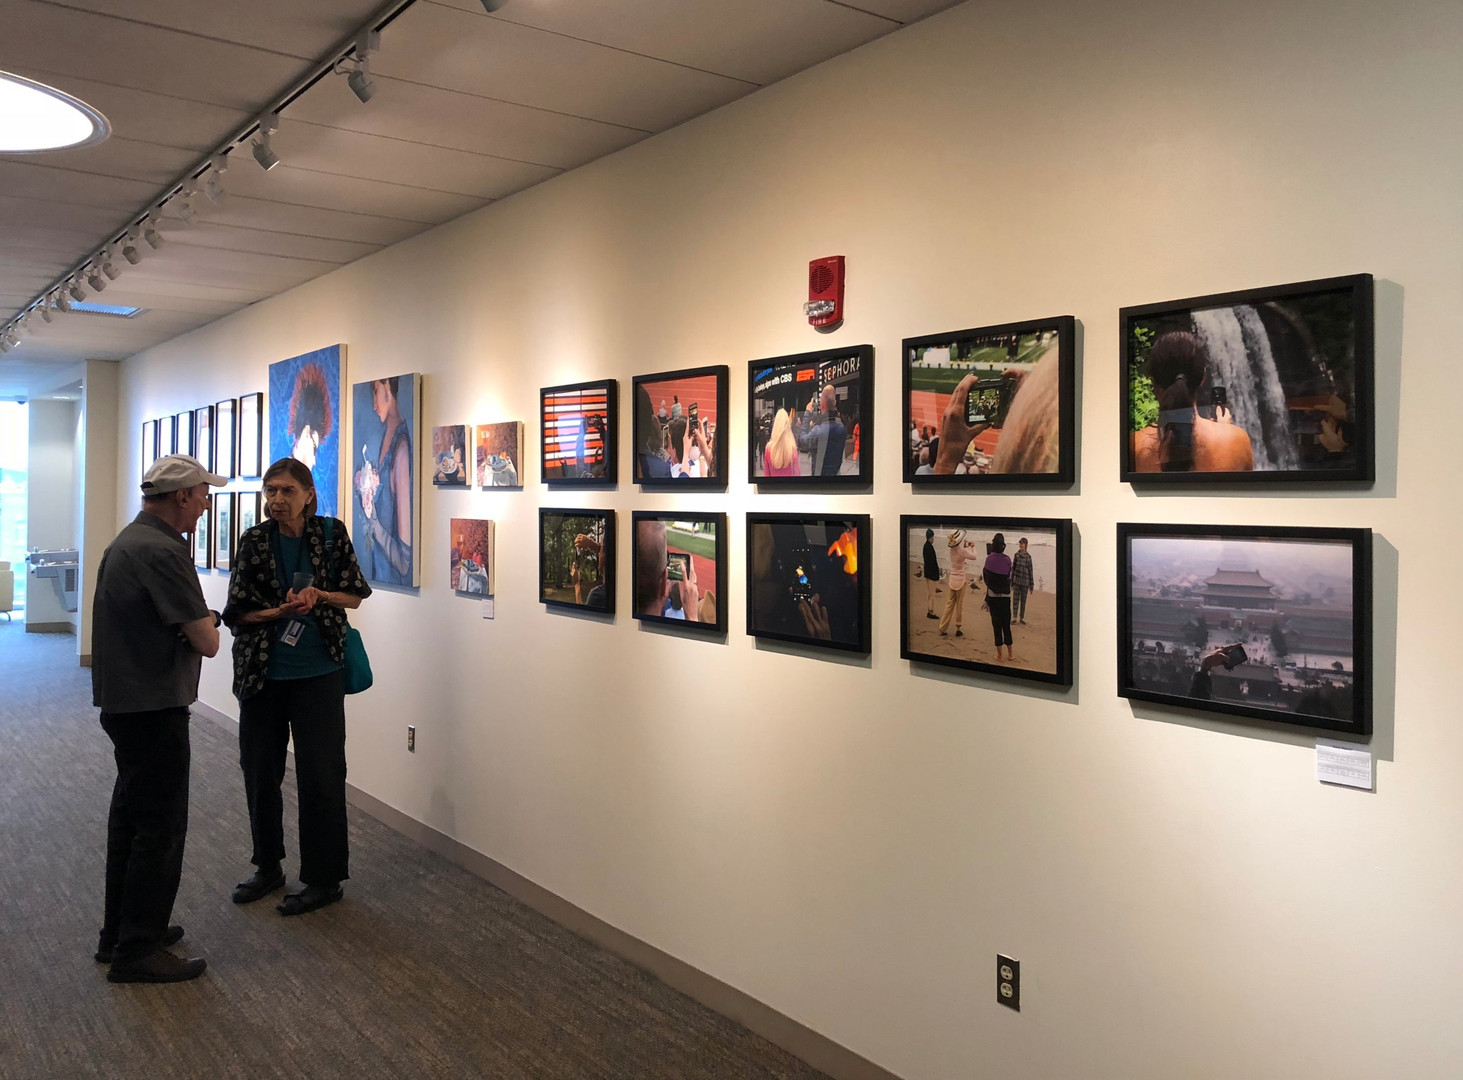 Fine Arts Gallery at St. Peter's University